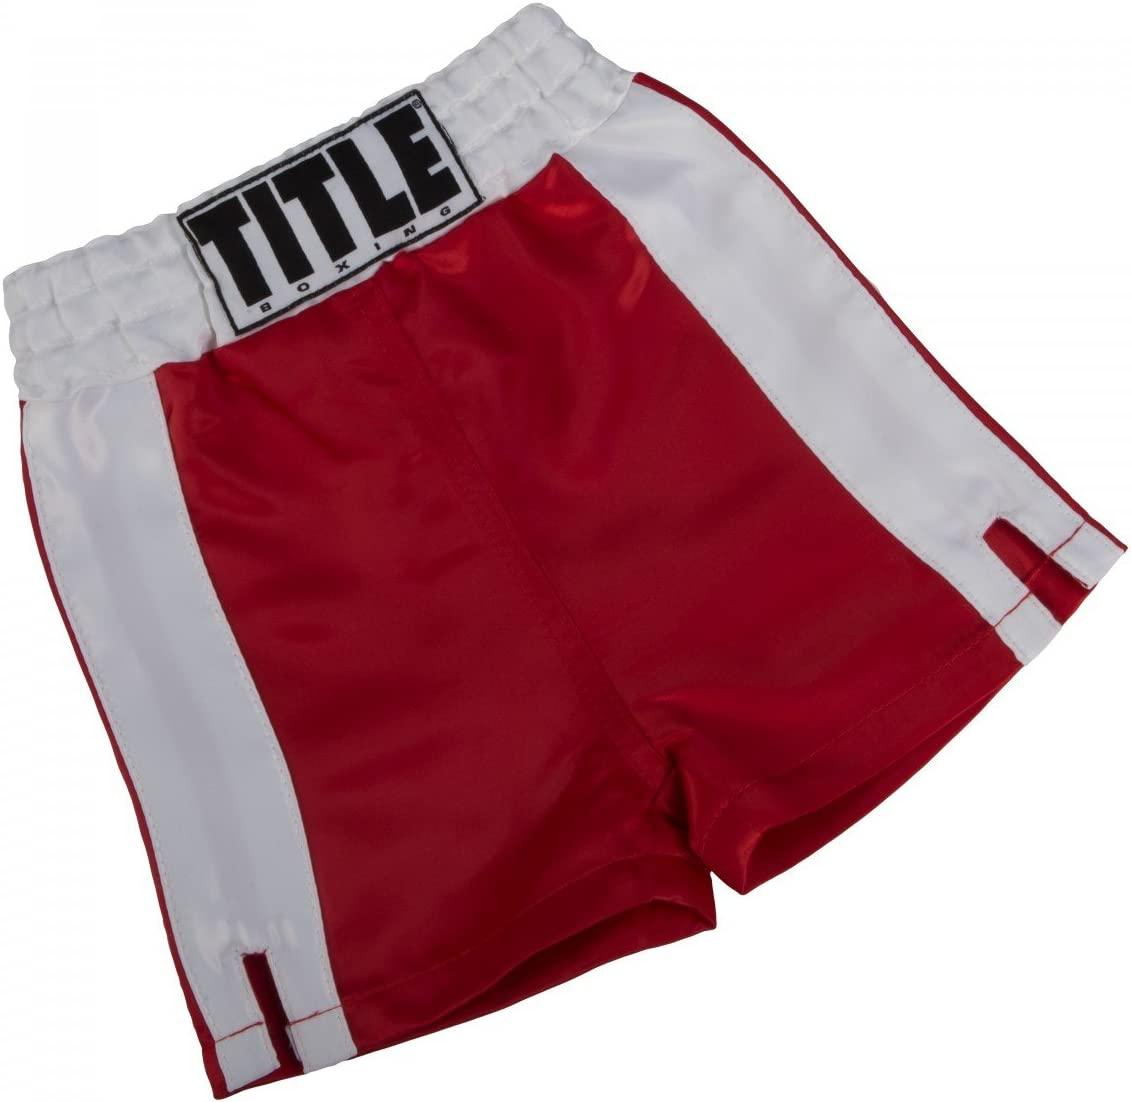 All stores are sold Quantity limited Title Mini Boxing Trunks